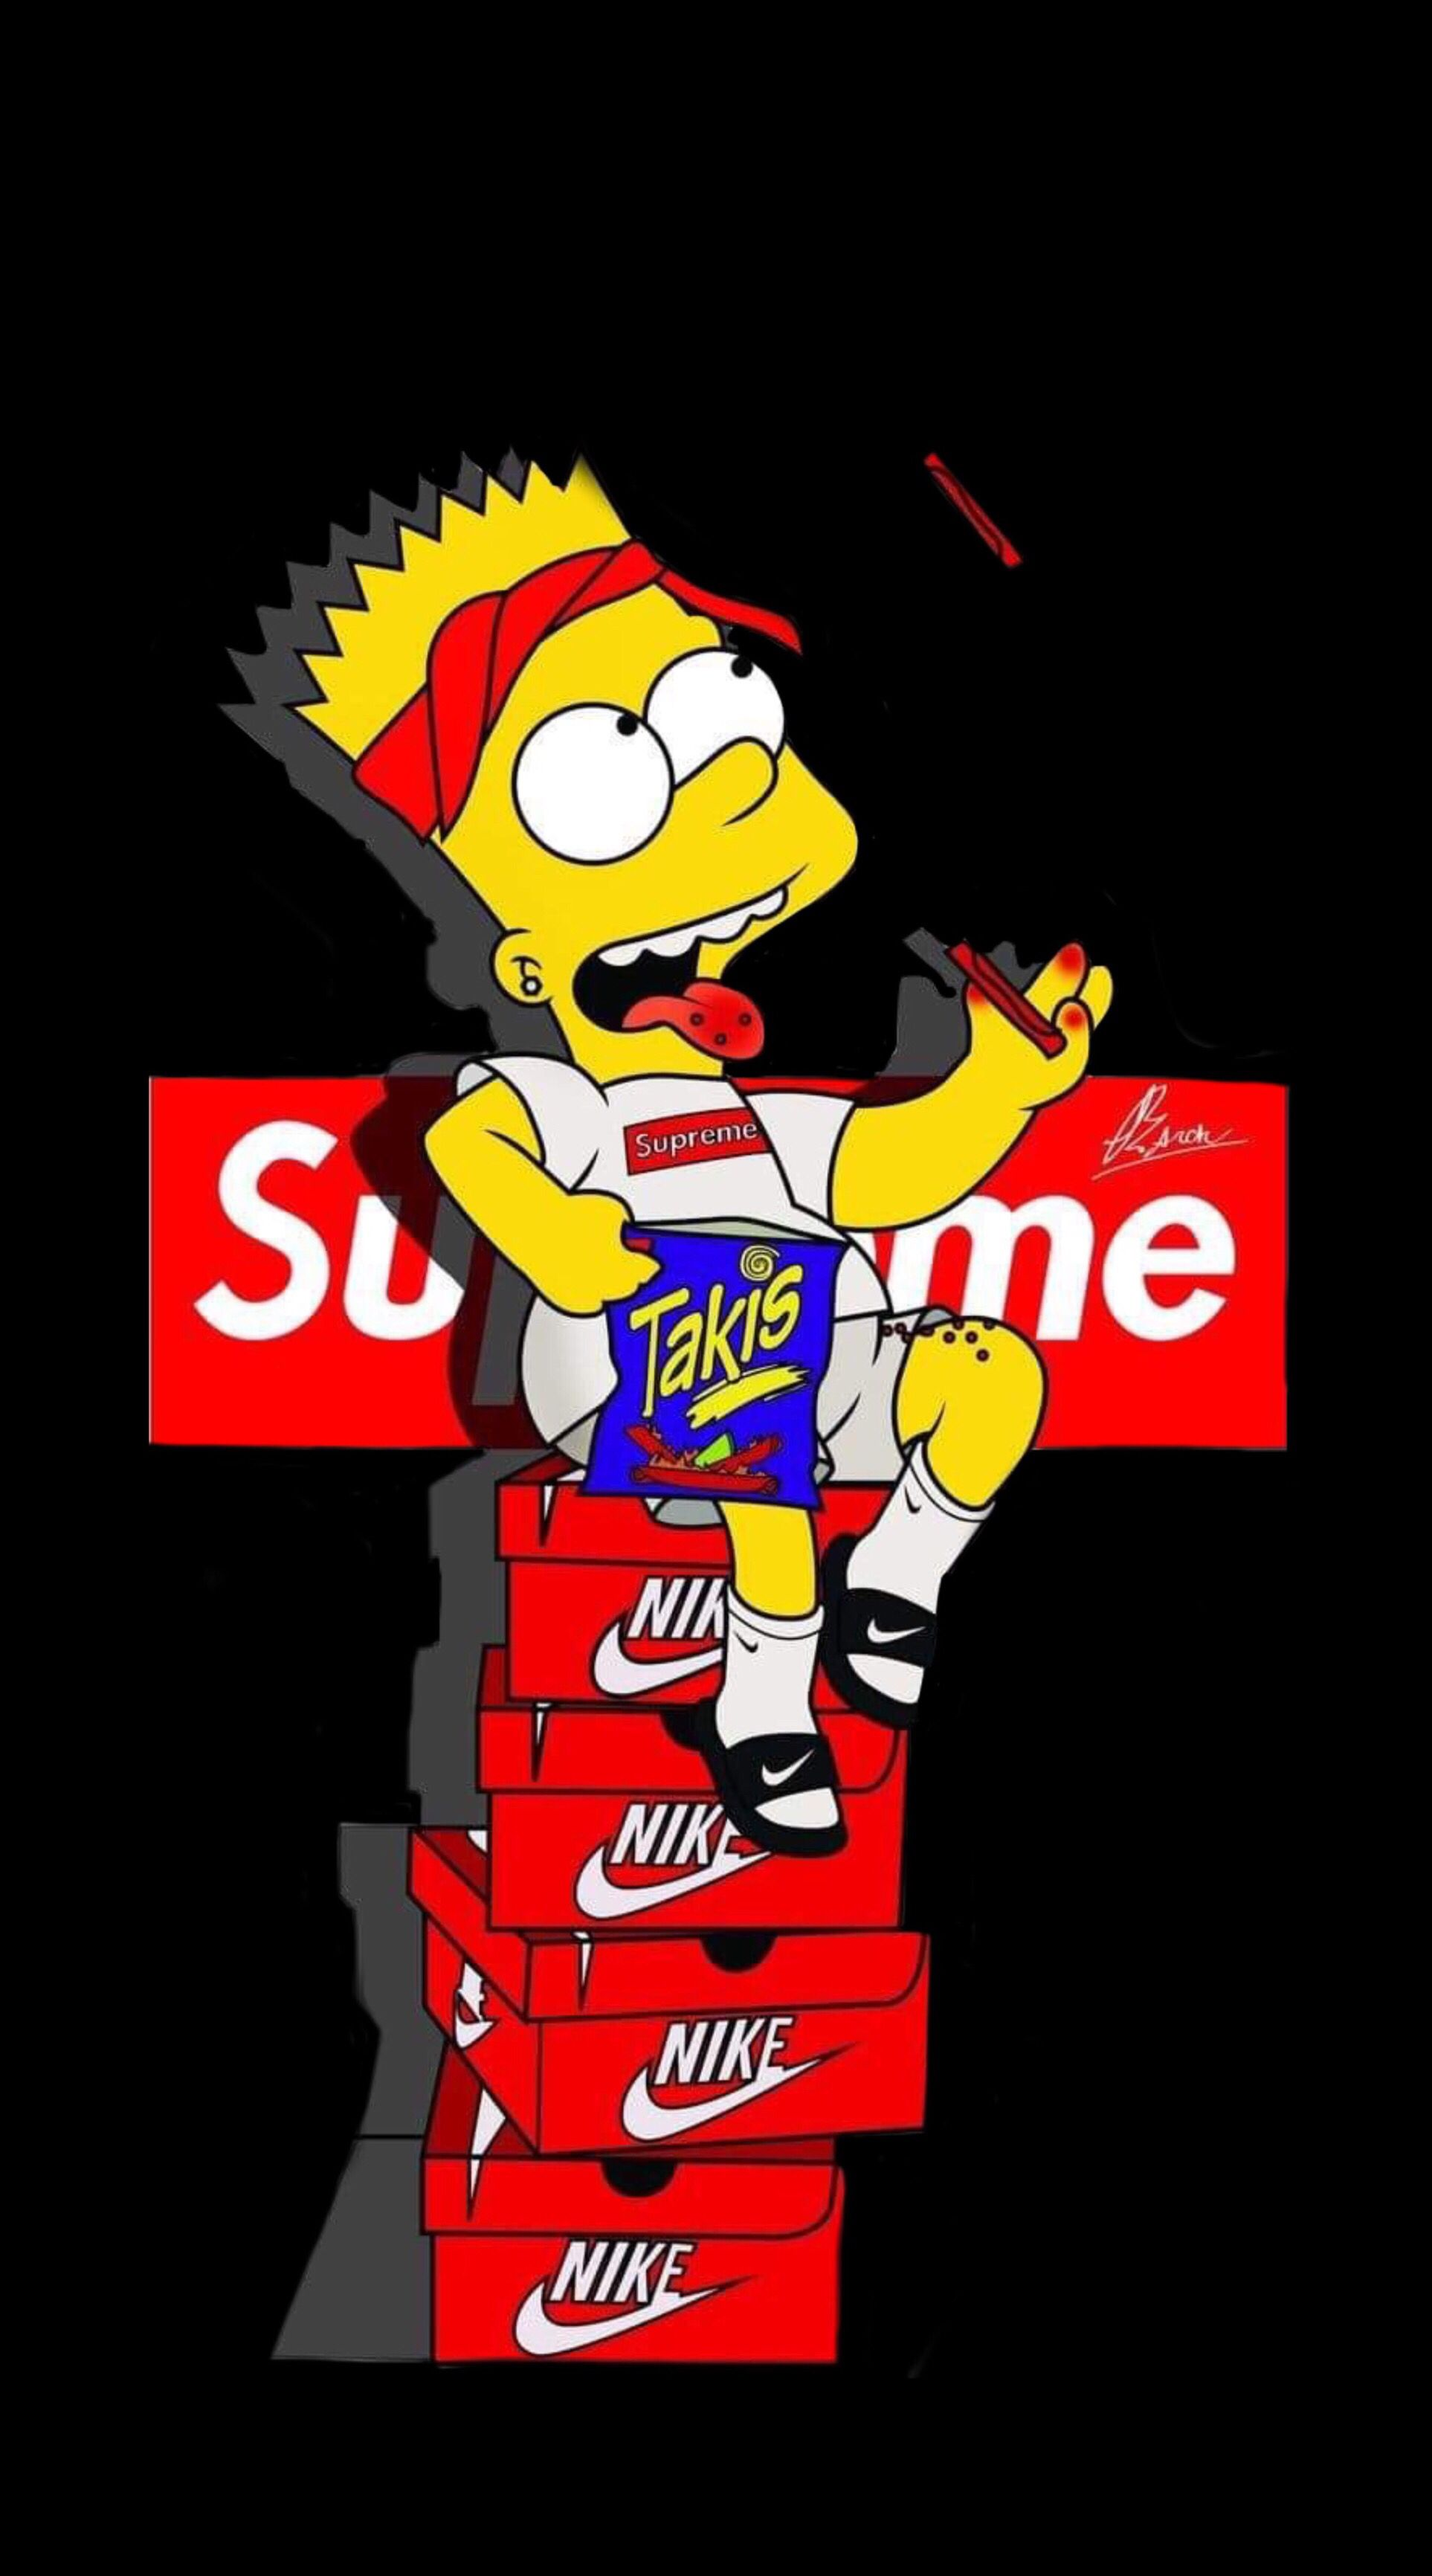 Pin By Claritza Campos On Iphone Wallpapers Bart Simpson Art Simpsons Art Simpsons Cartoon